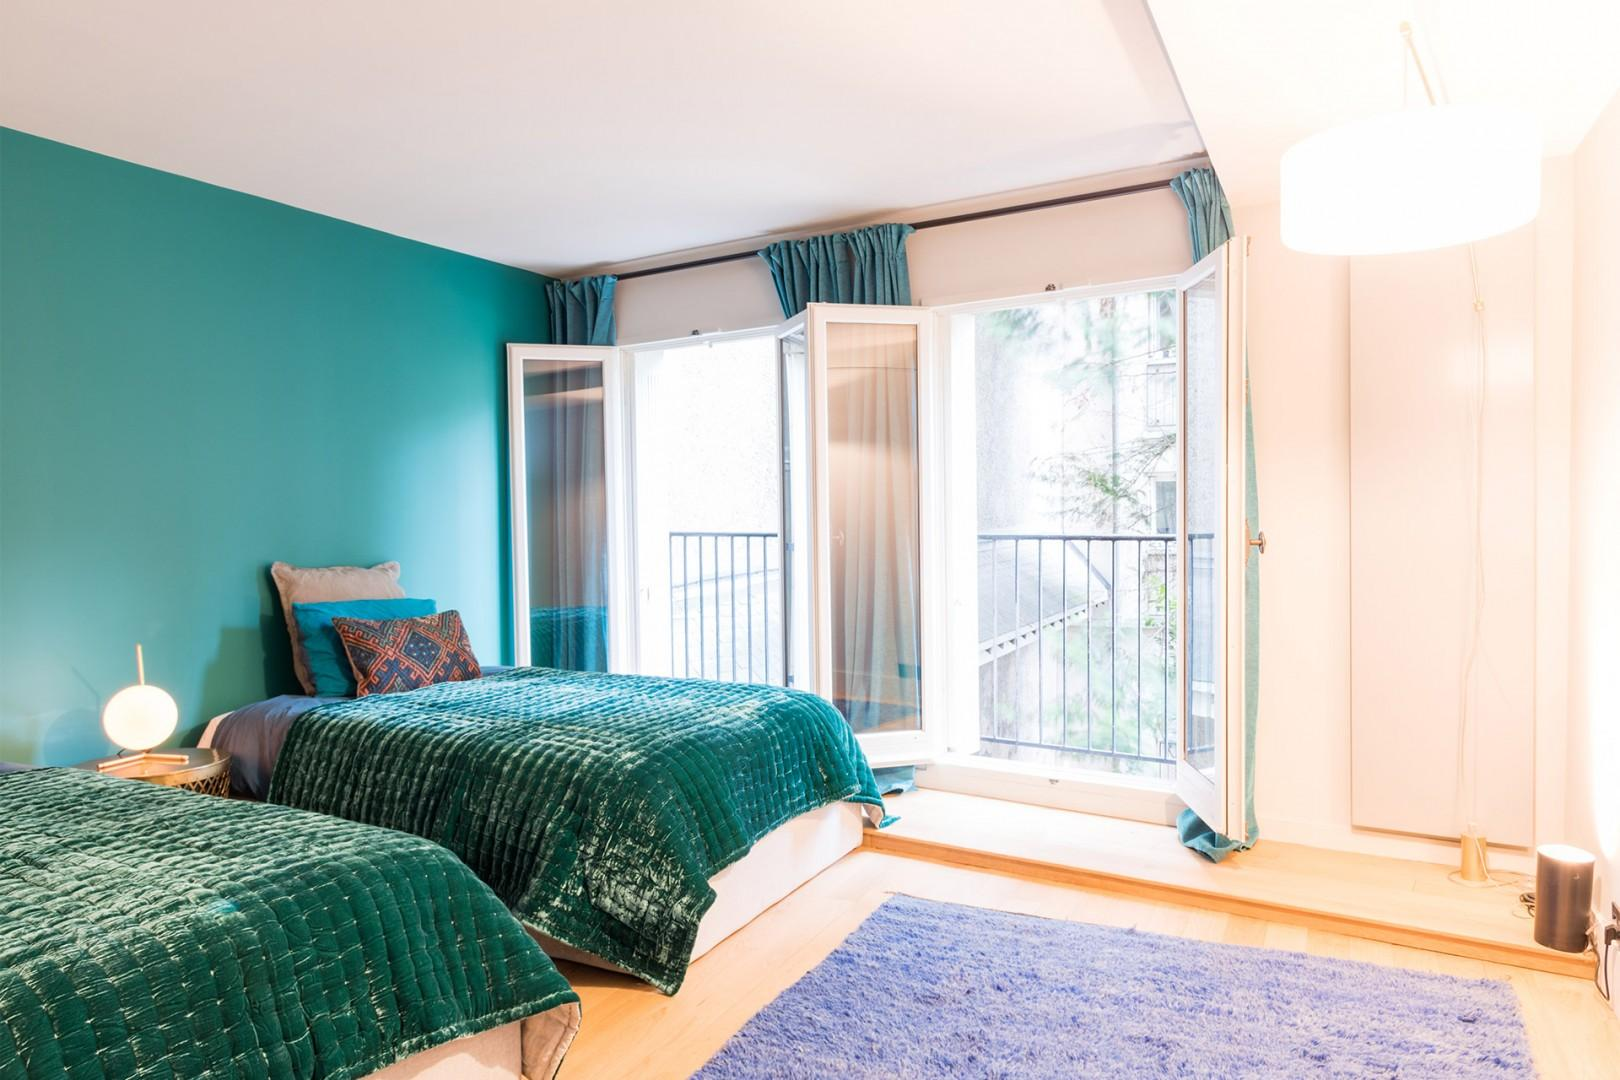 Two large French windows allow lots of natural light in bedroom 2.